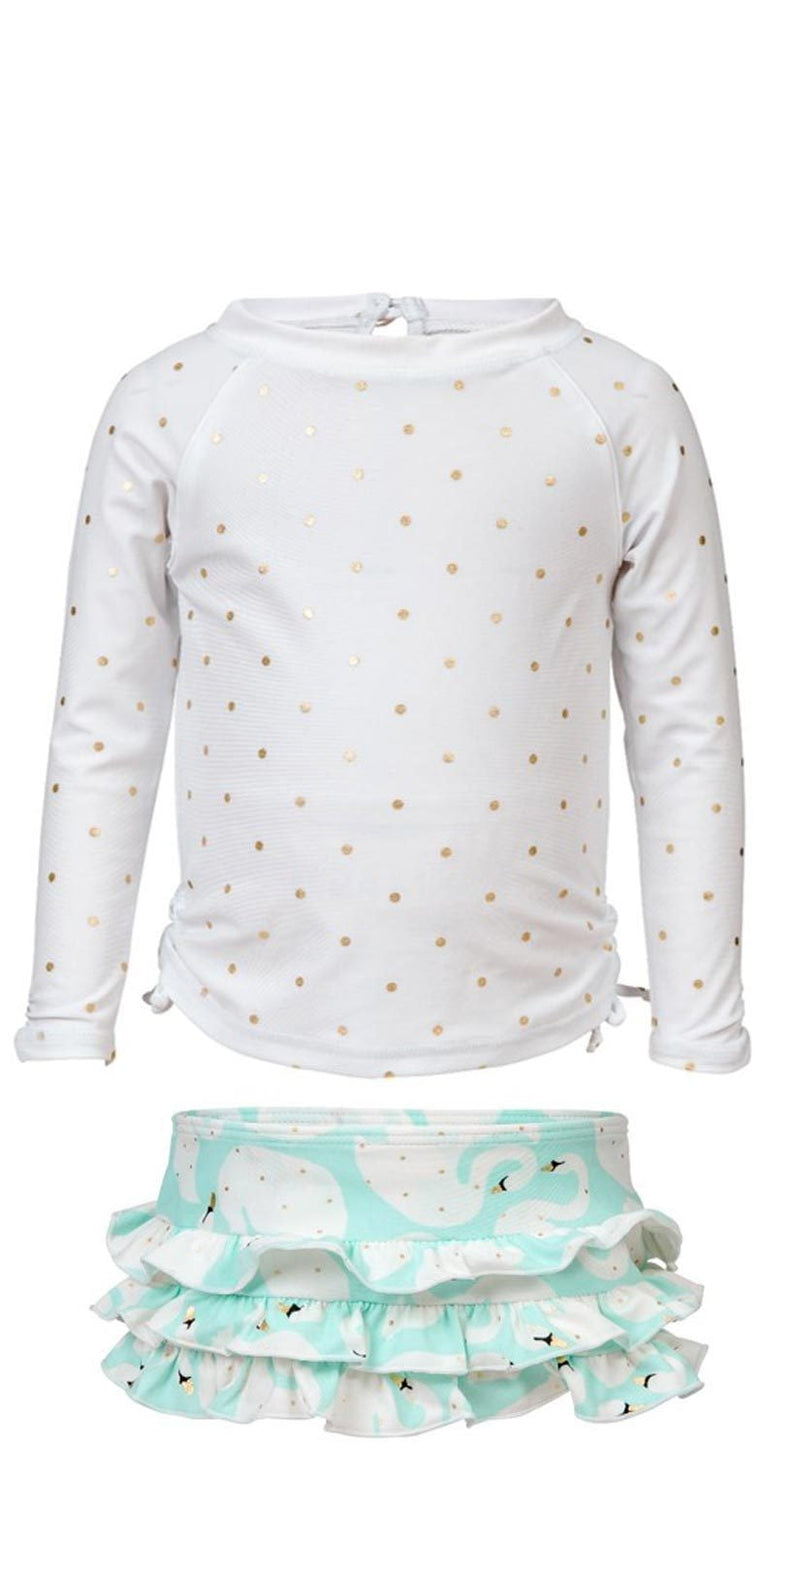 Snapperrock Girls Swan Long Sleeve Rashguard Set G50011: